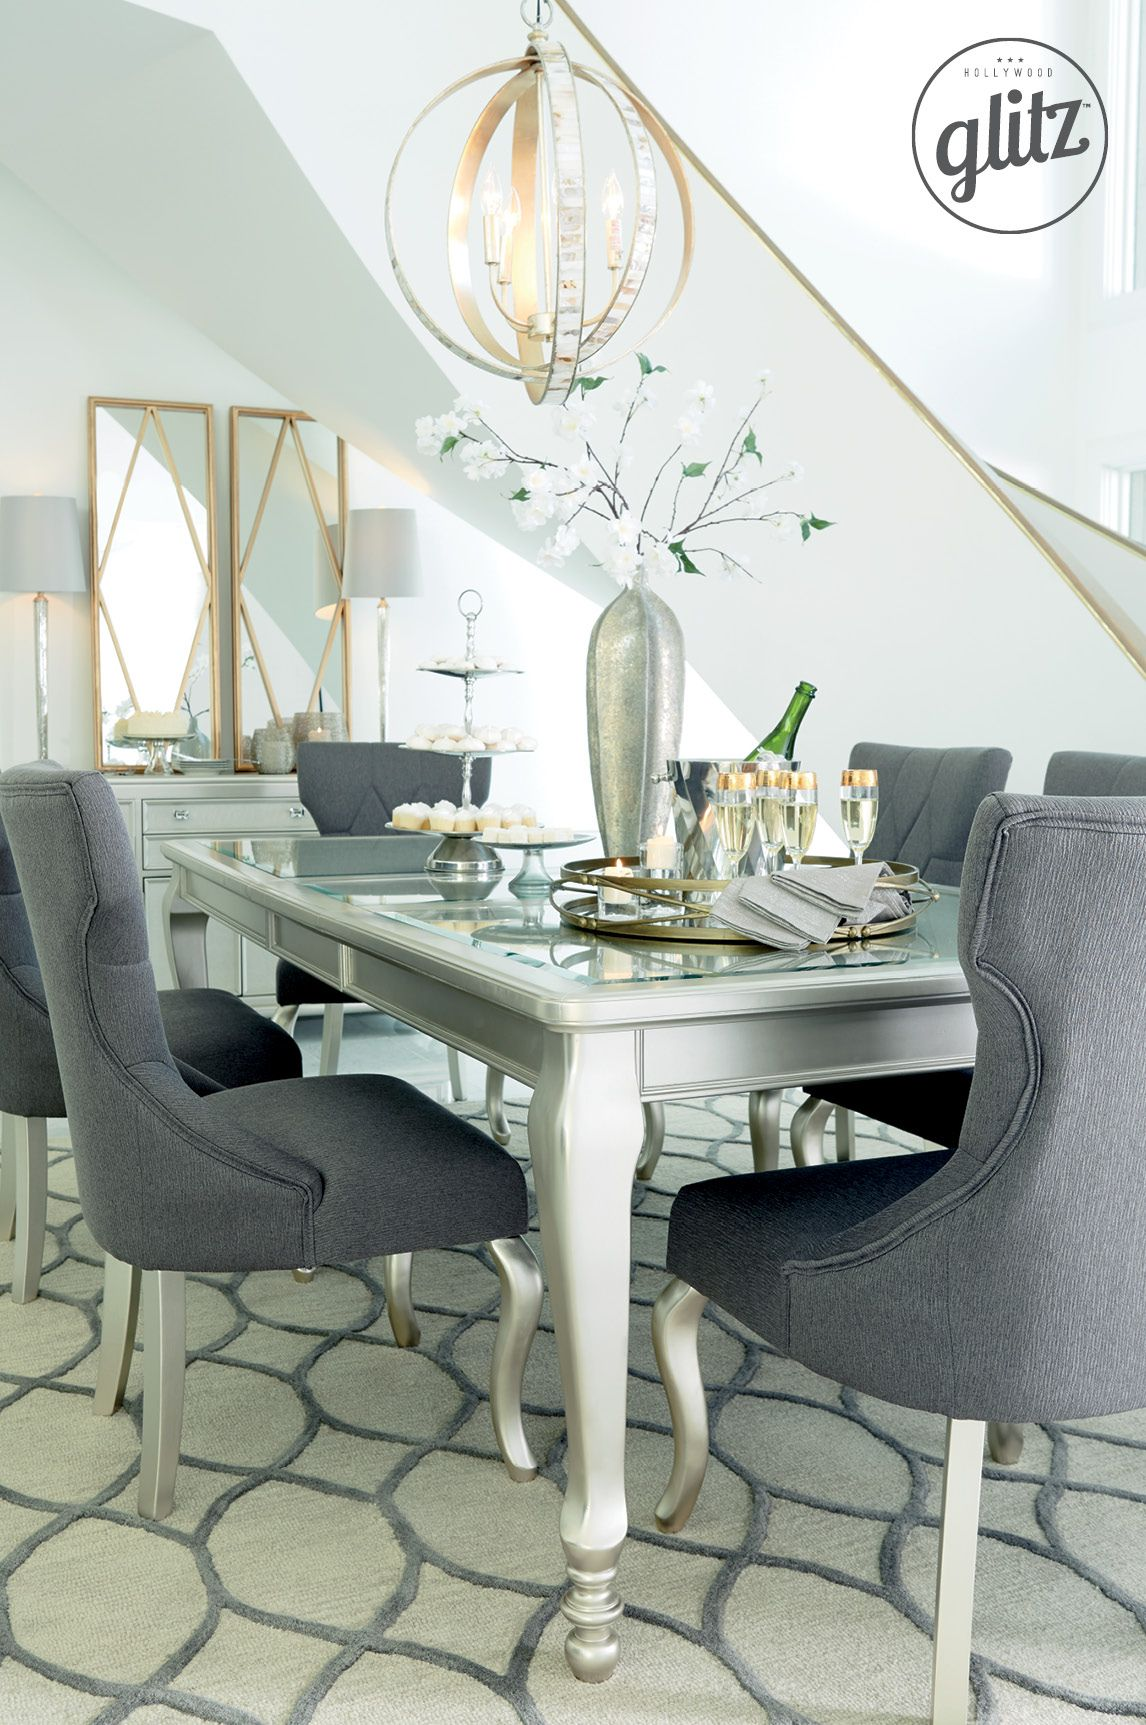 hollywood-inspired style! think gold and silver accents, curvy